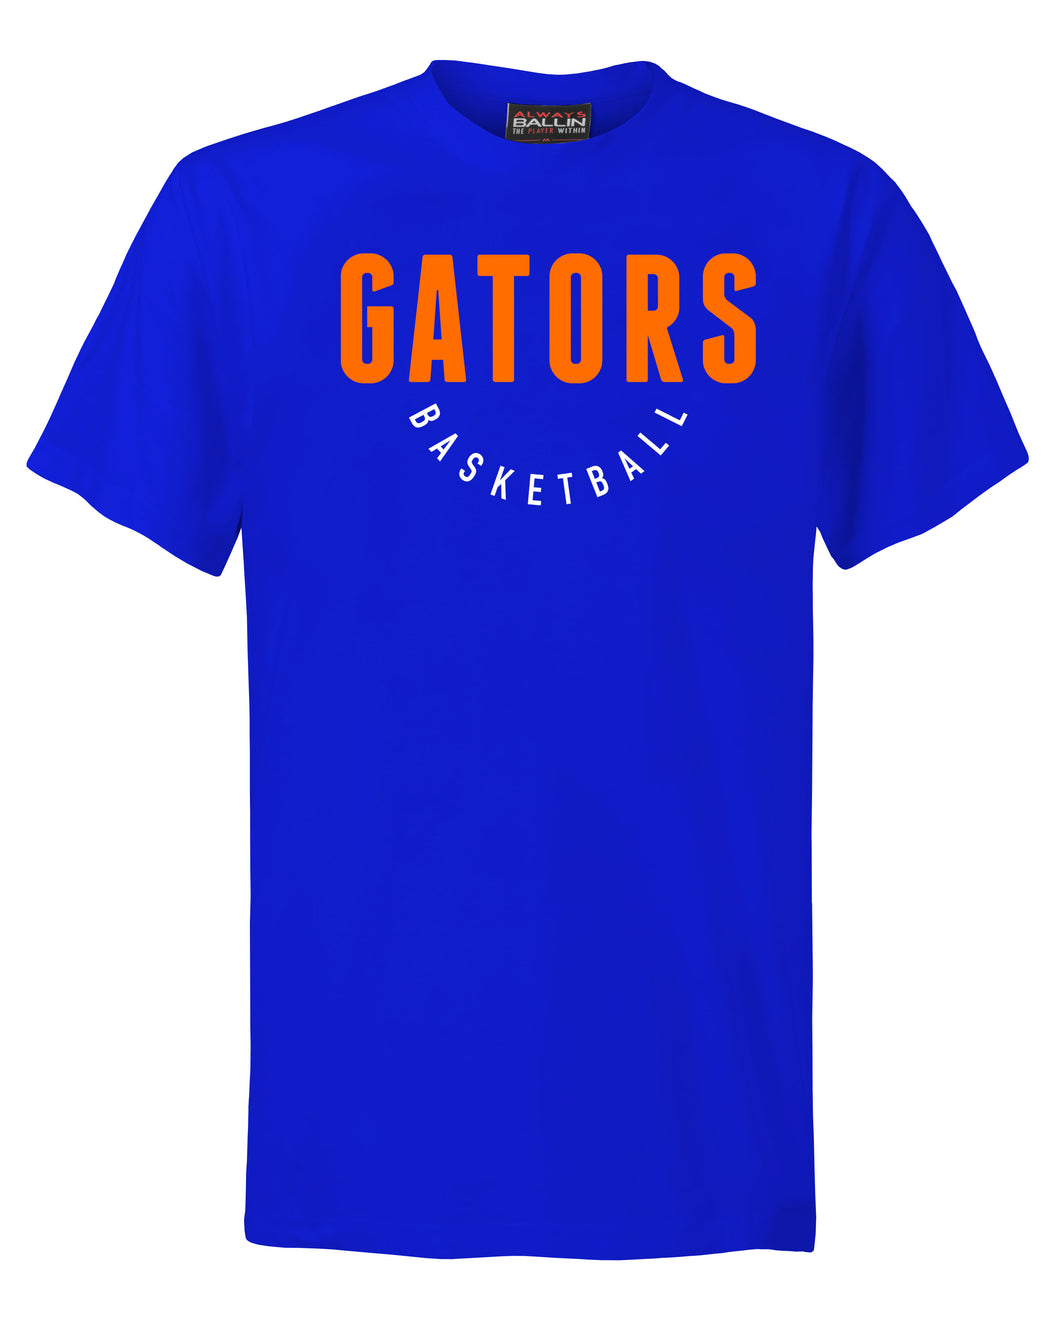 Gators Basketball Adult Royal Blue T-Shirt